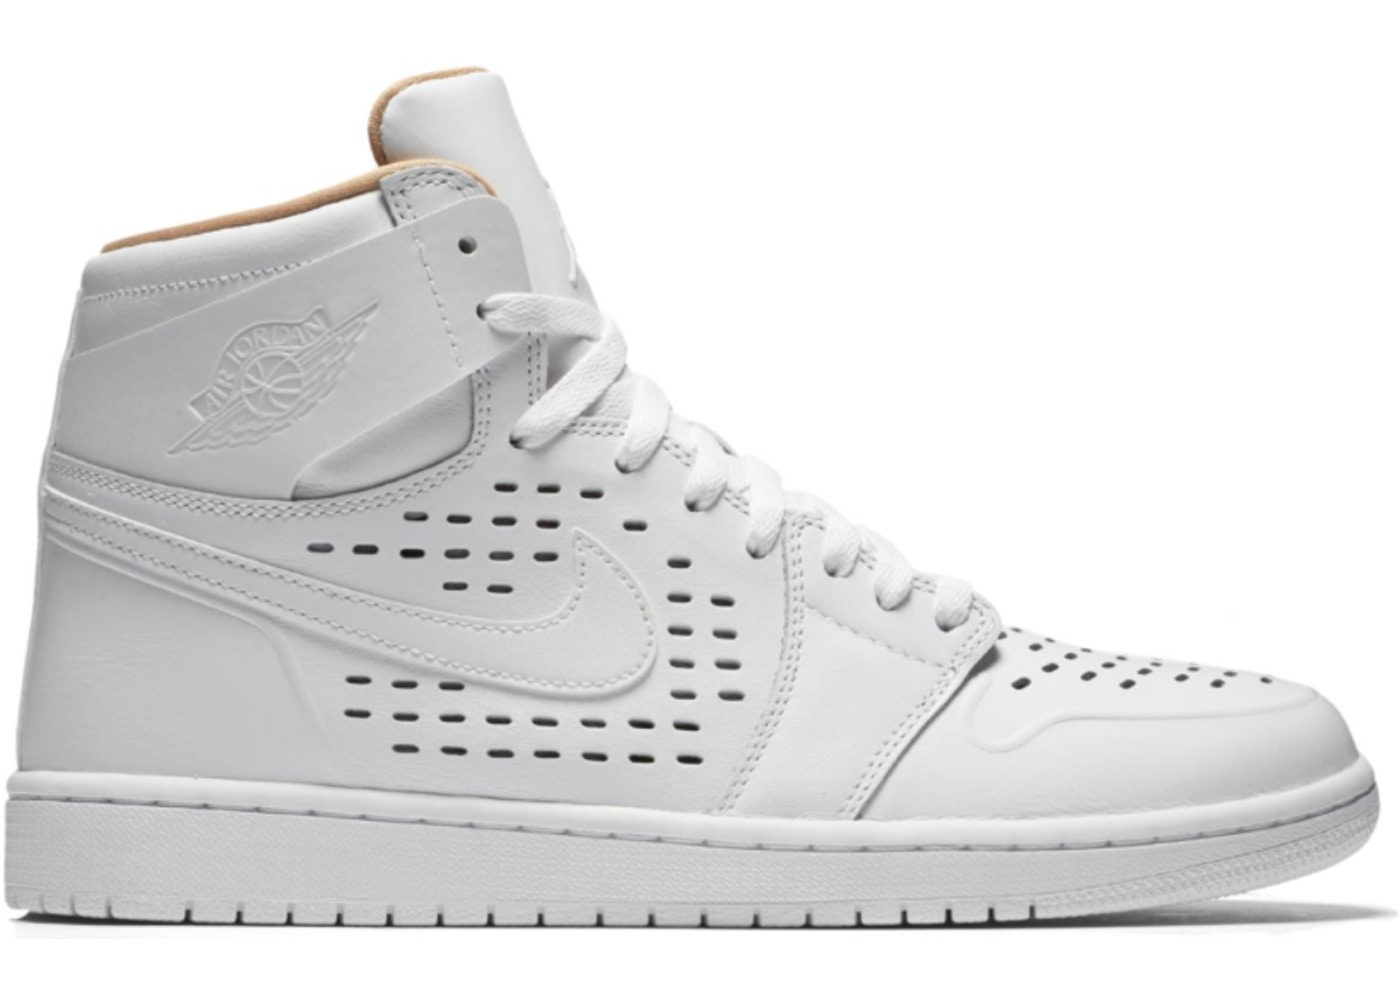 detailed look 5efc9 42809 Jordan 1 Retro White Vachetta Tan